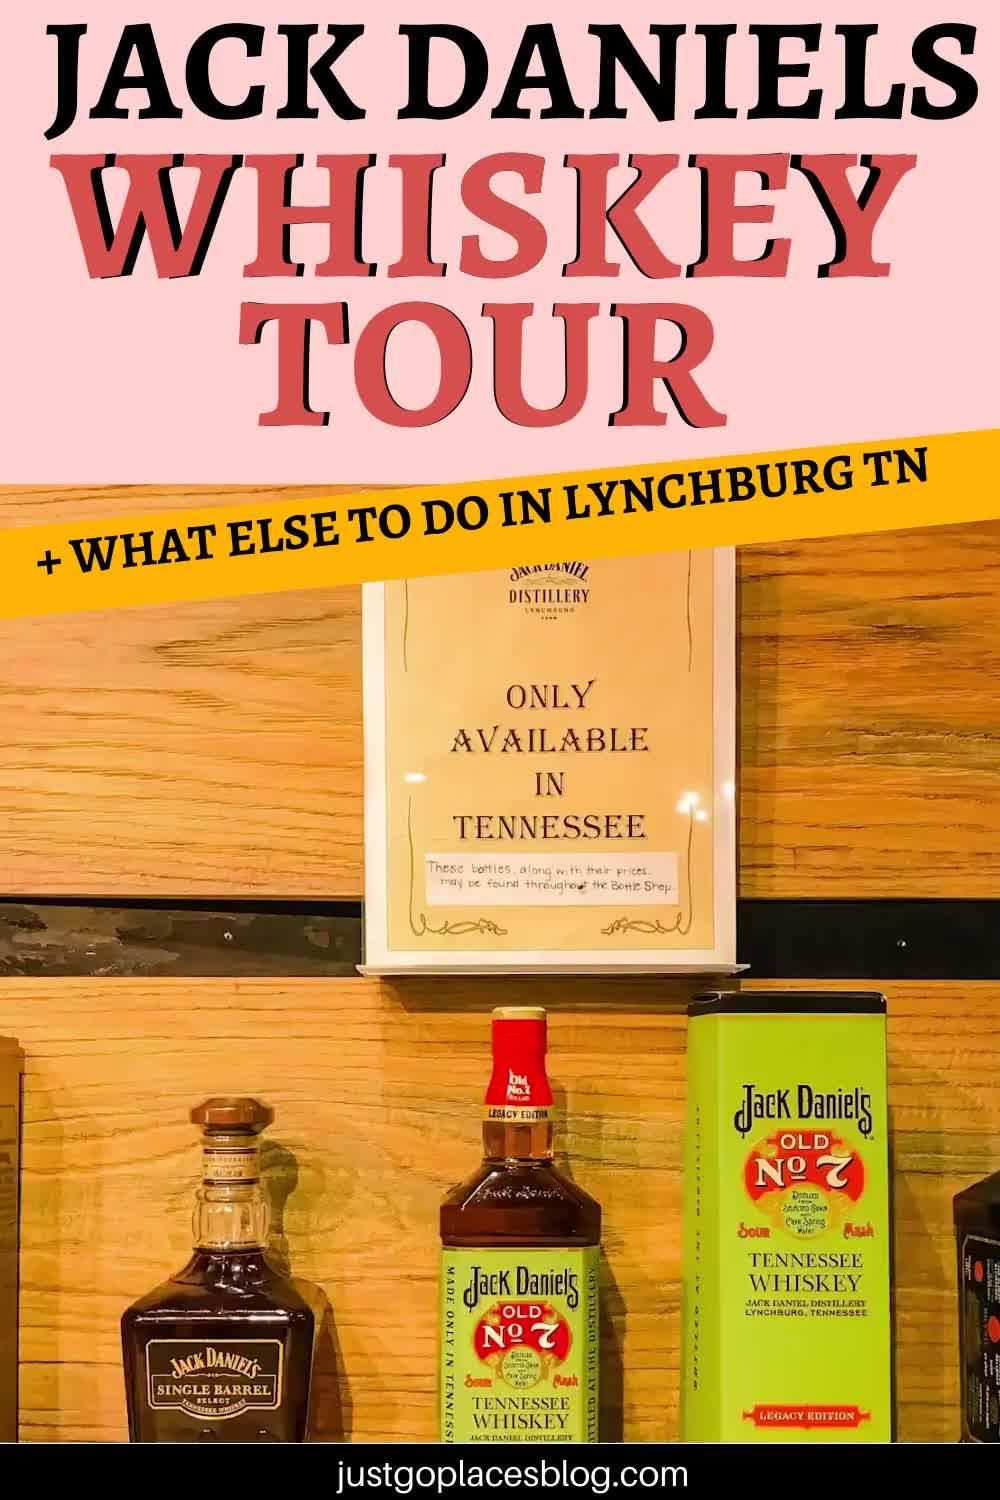 After the Jack Daniels Whiskey Tour in Lynchburg Tennessee, check out all the things to do in the town! Jack Daniels Barrel | Tennessee Vacation Things To Do| Jack Daniels | Tennessee Whiskey | Tennessee Travel Destinations | Vacation Budget | Off the Beaten Path | Wanderlust | Tennessee Vacation #travel #vacation #budgettravel #offthebeatenpath #bucketlist #wanderlust #Tennessee #USA #UnitedStates #America #exploreTennessee #visitTennessee #seeTennessee #discoverTennessee #travelTennessee